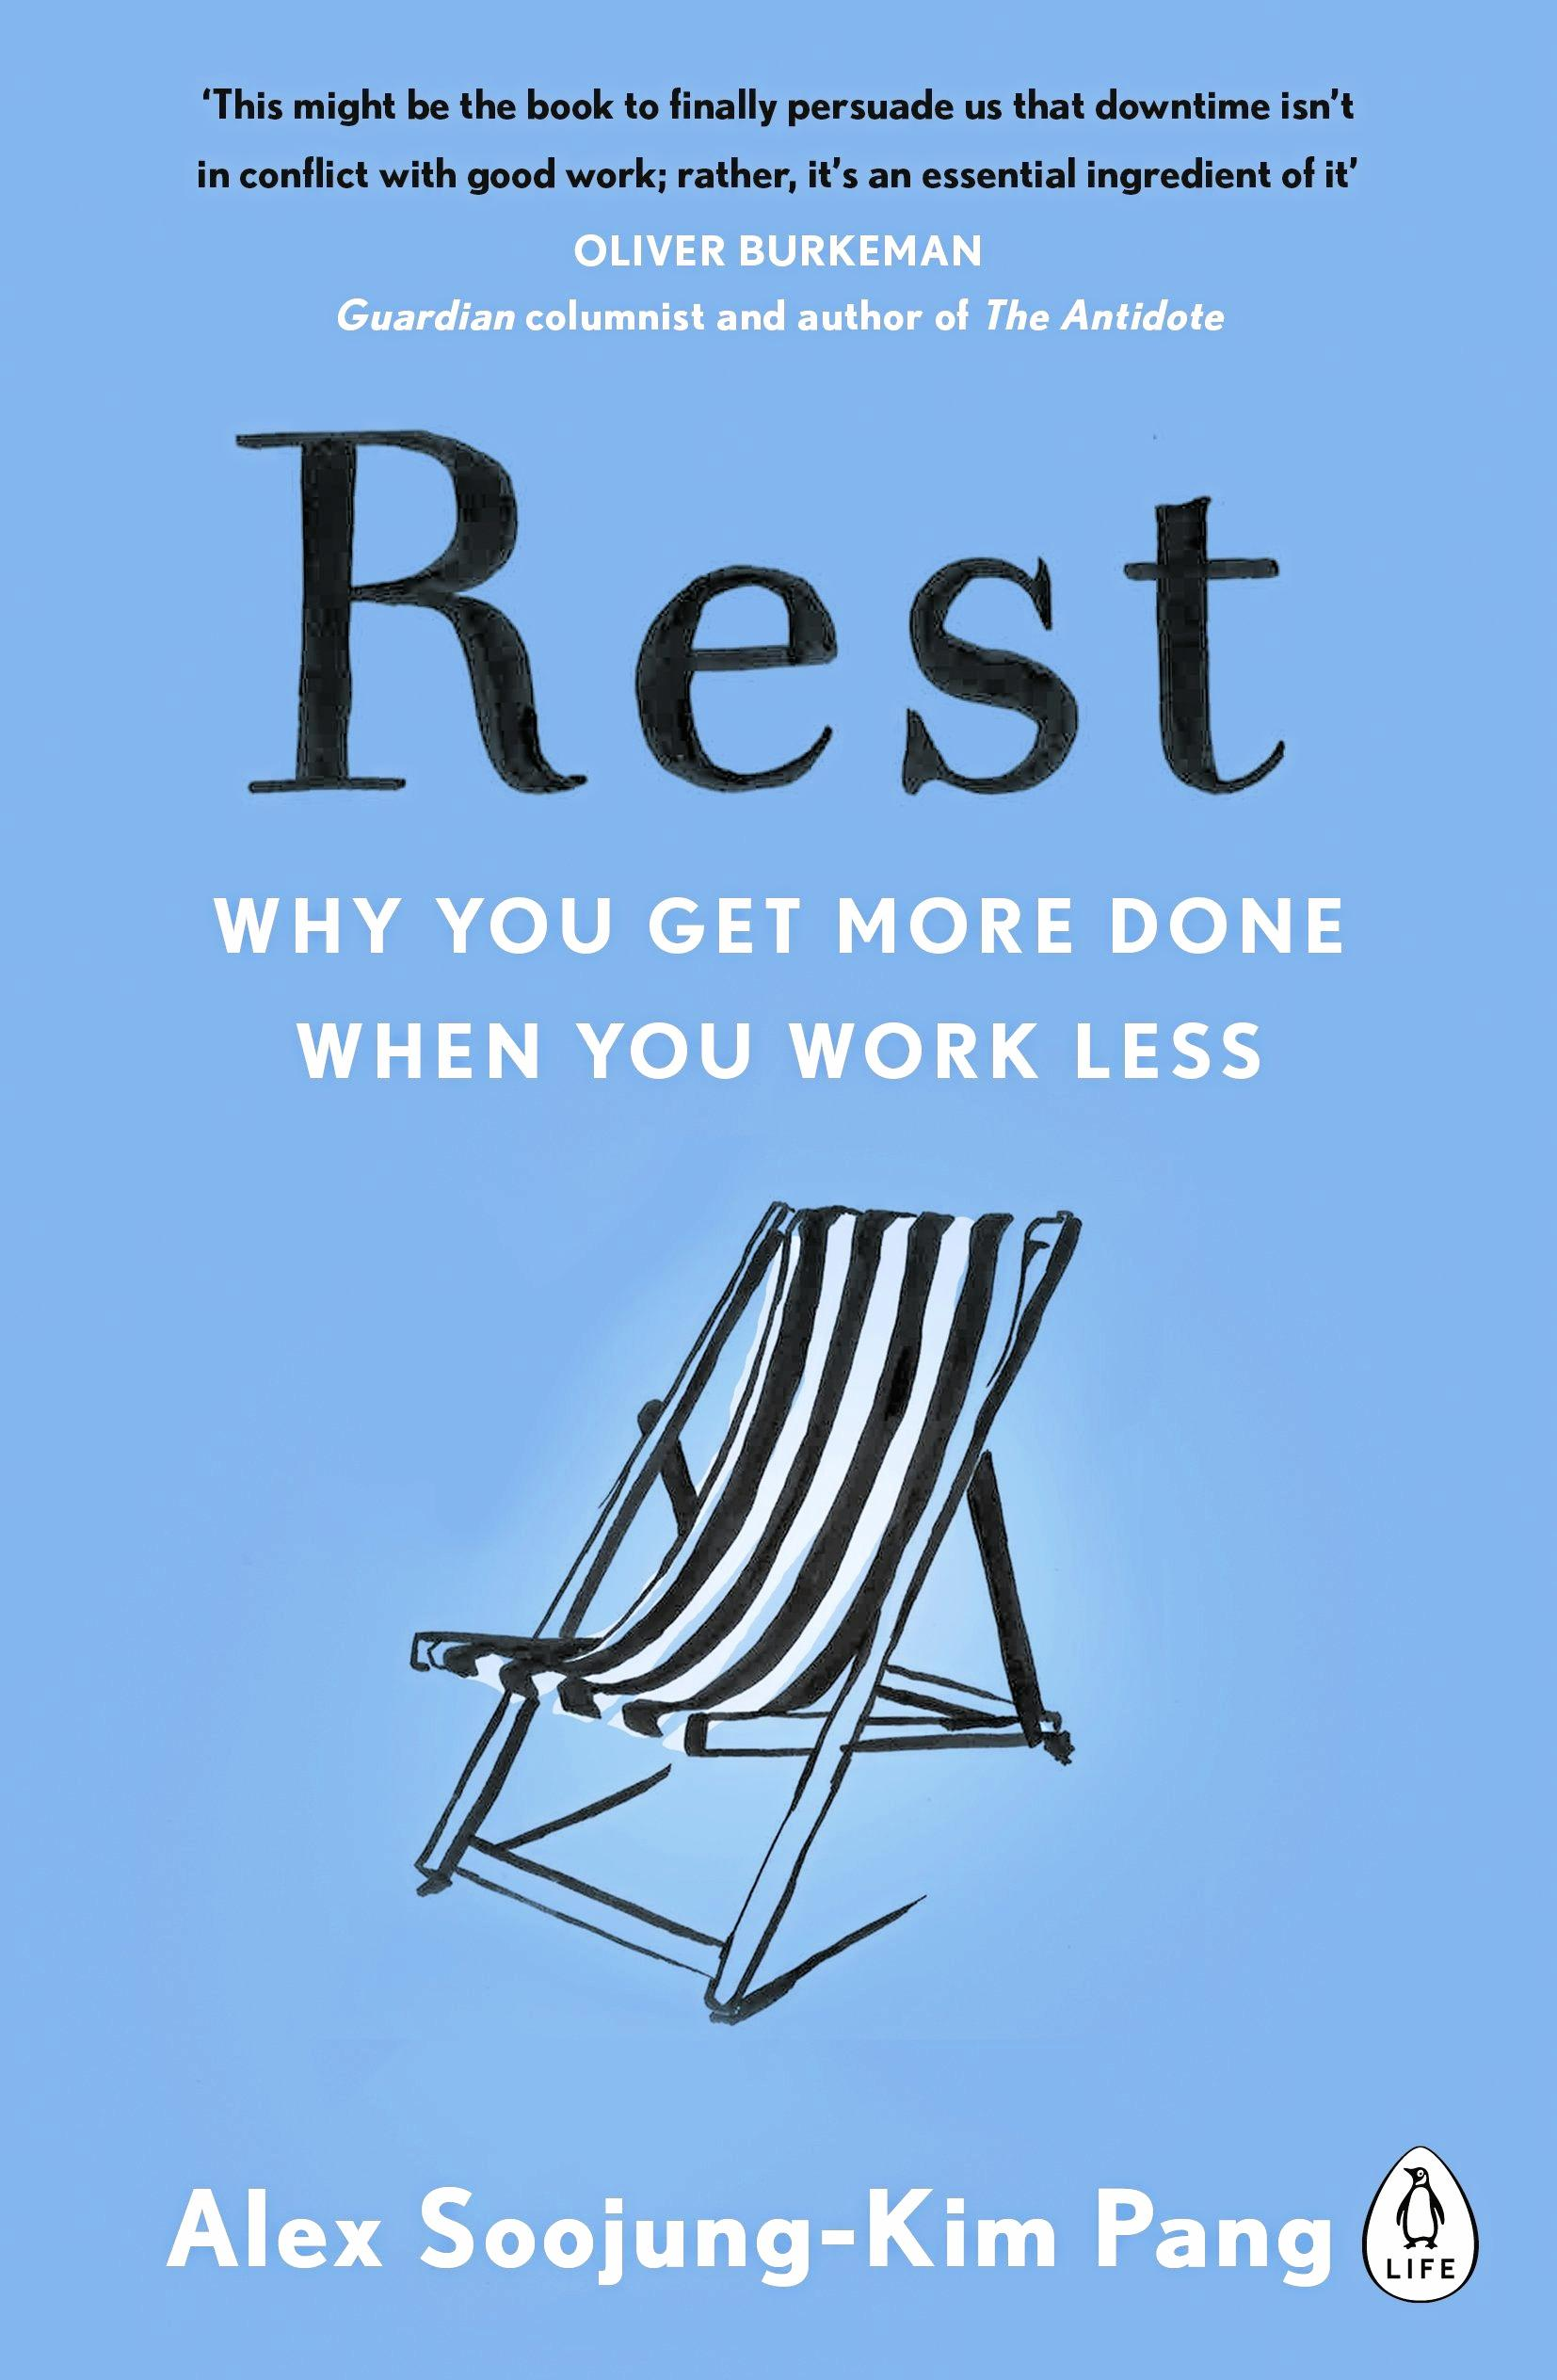 According to Rest a new book by Alex Soojun-Kim Pang